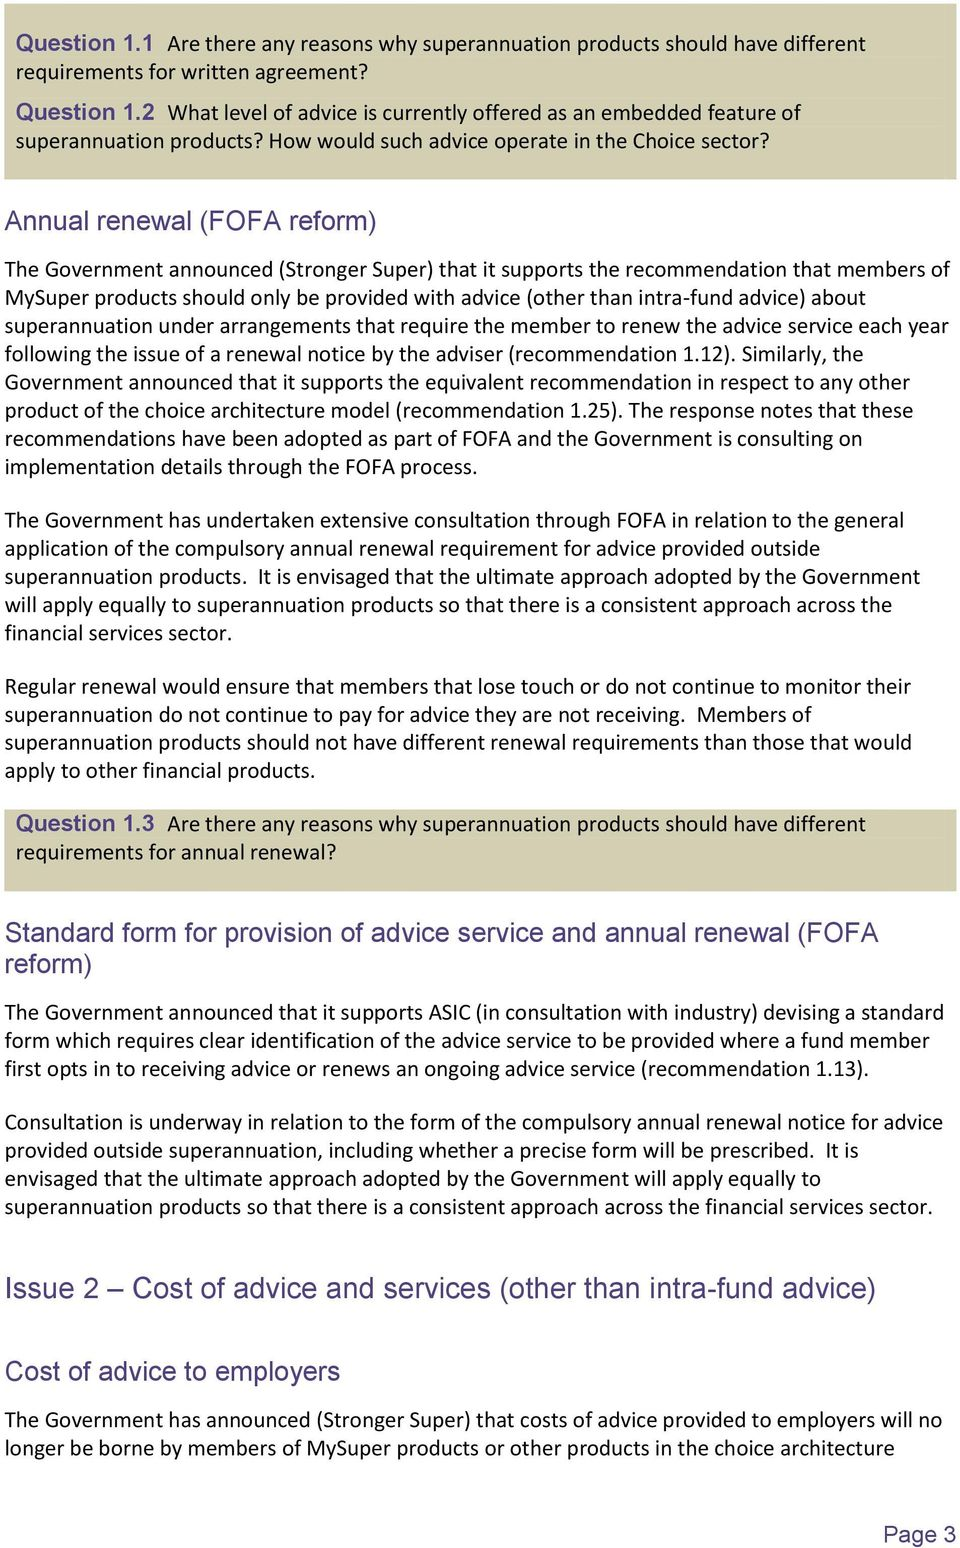 Annual renewal (FOFA reform) The Government announced (Stronger Super) that it supports the recommendation that members of MySuper products should only be provided with advice (other than intra-fund